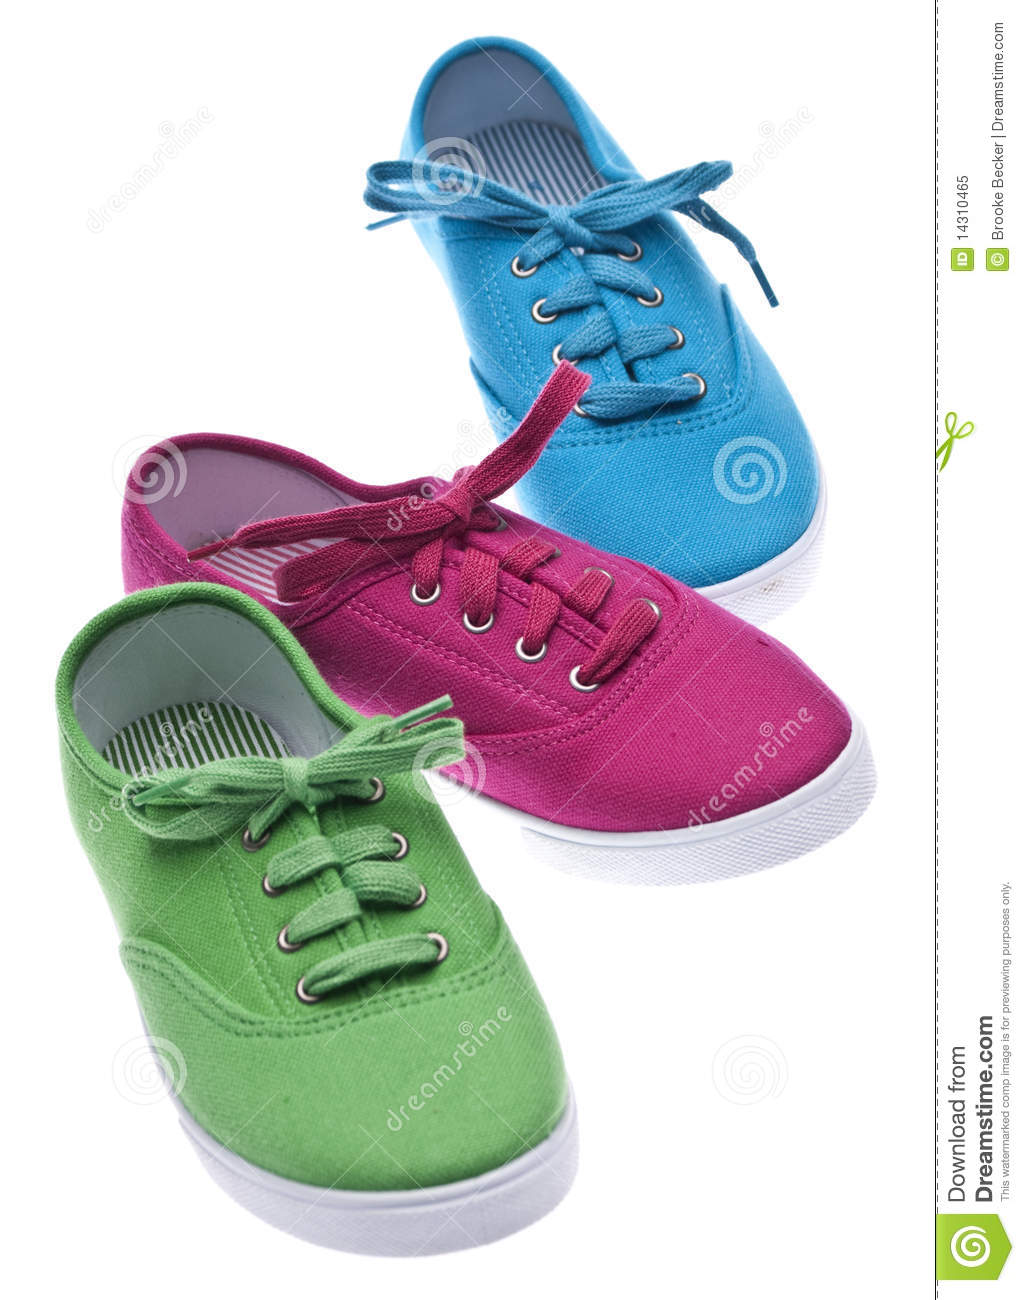 colorful canvas shoes royalty free stock photo image